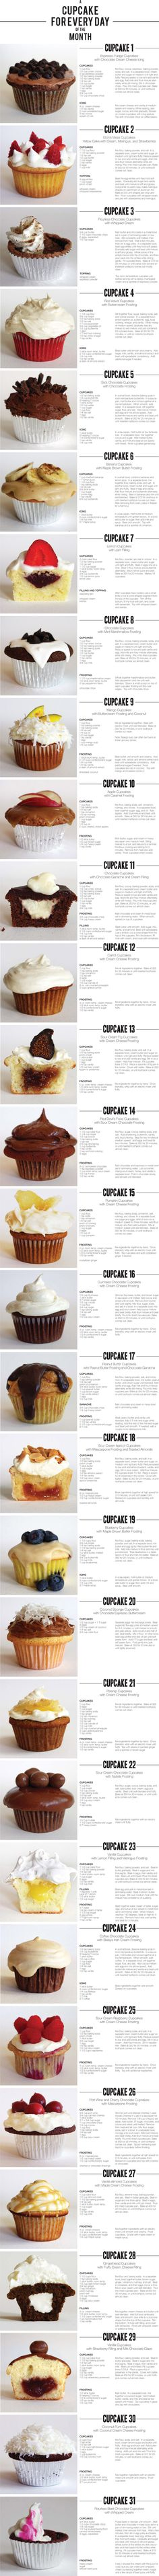 wow so many cupcake ideas!